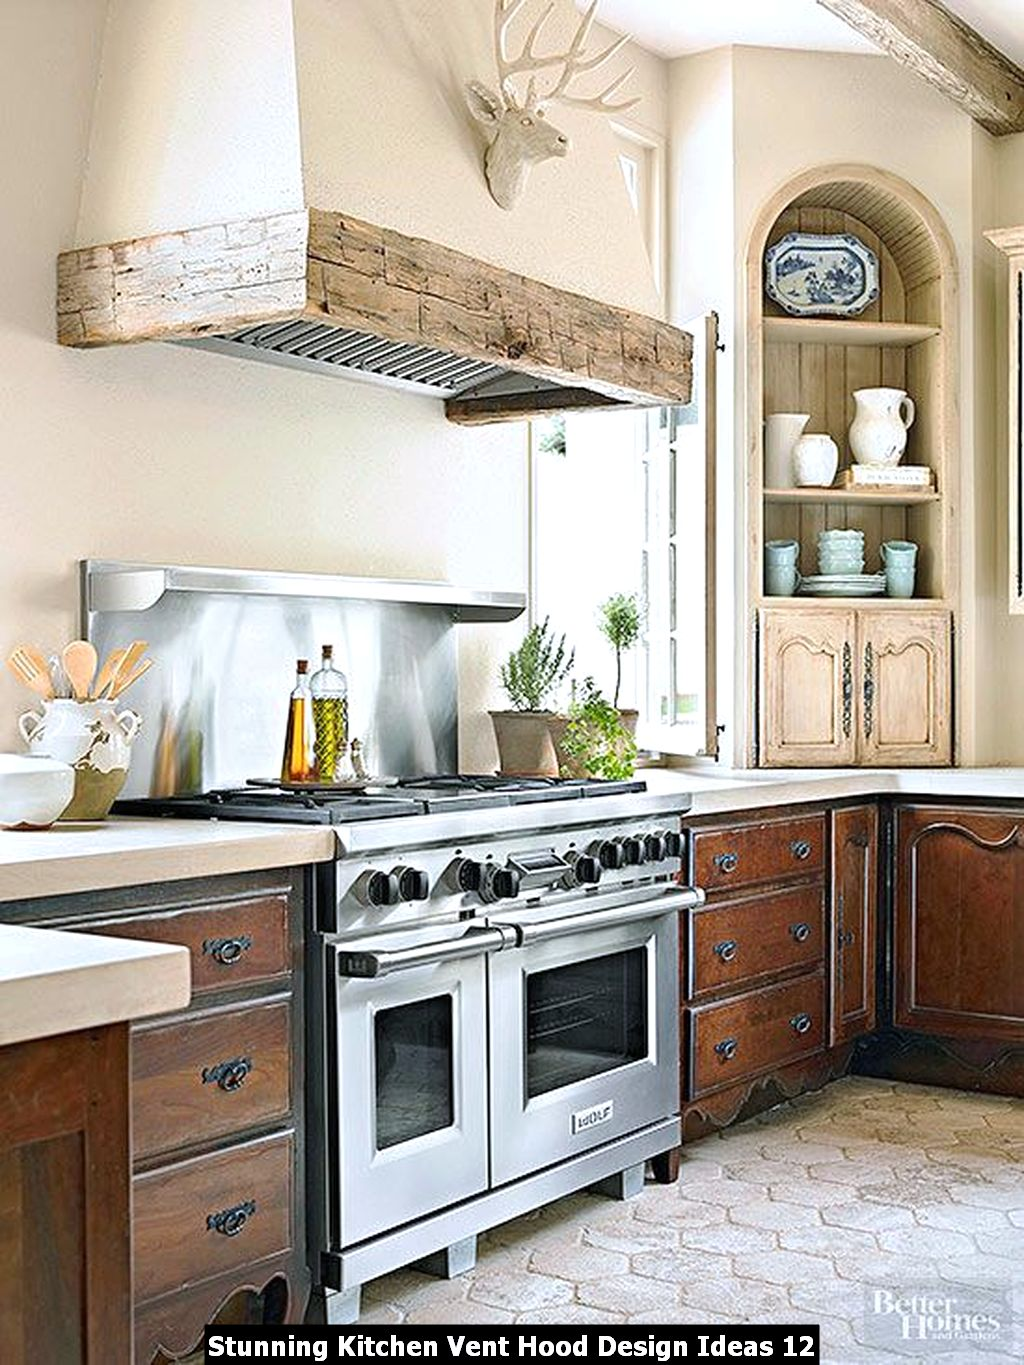 Stunning Kitchen Vent Hood Design Ideas 12